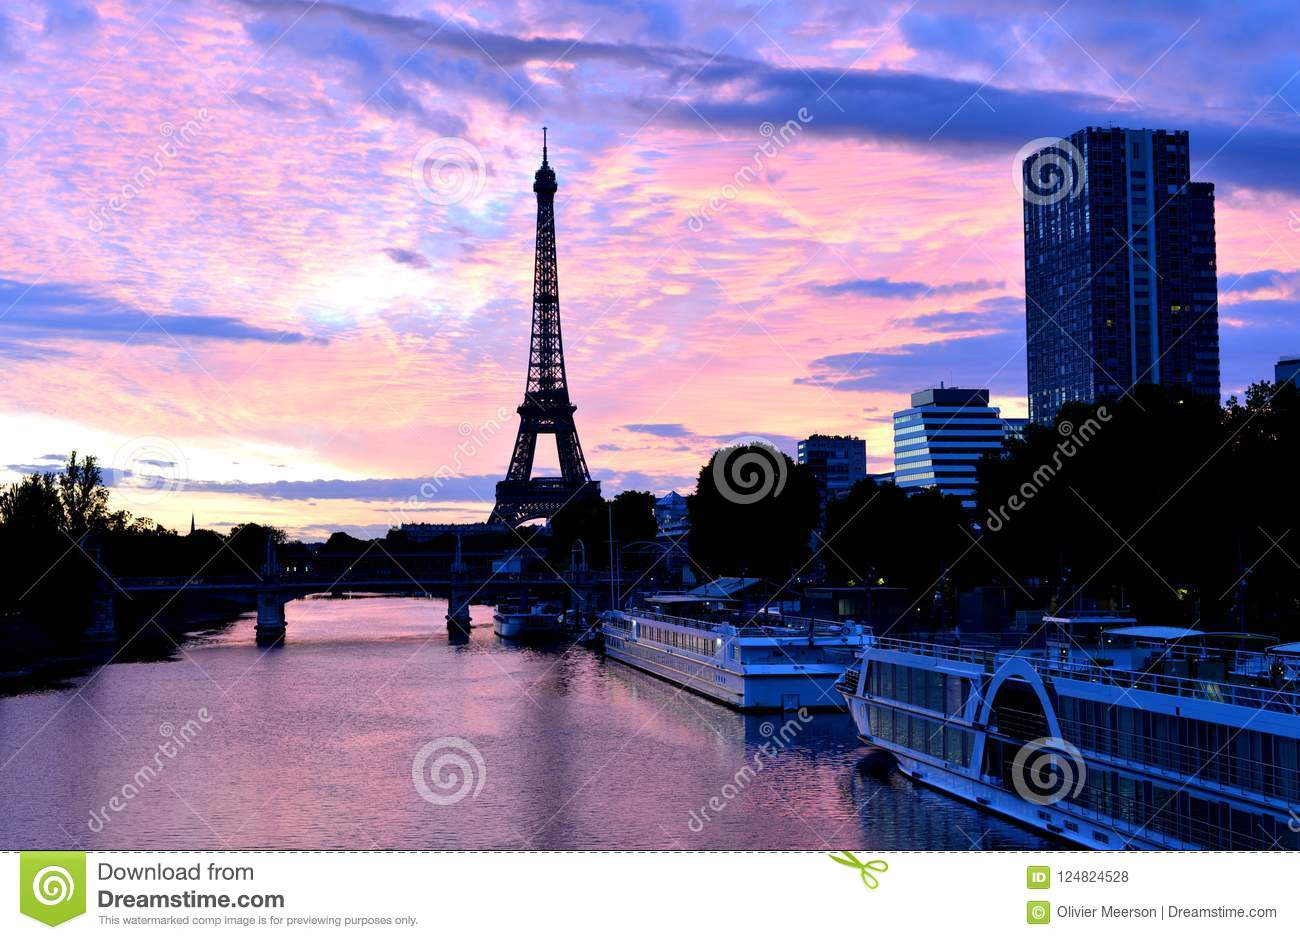 Eiffel tower, paris city, france